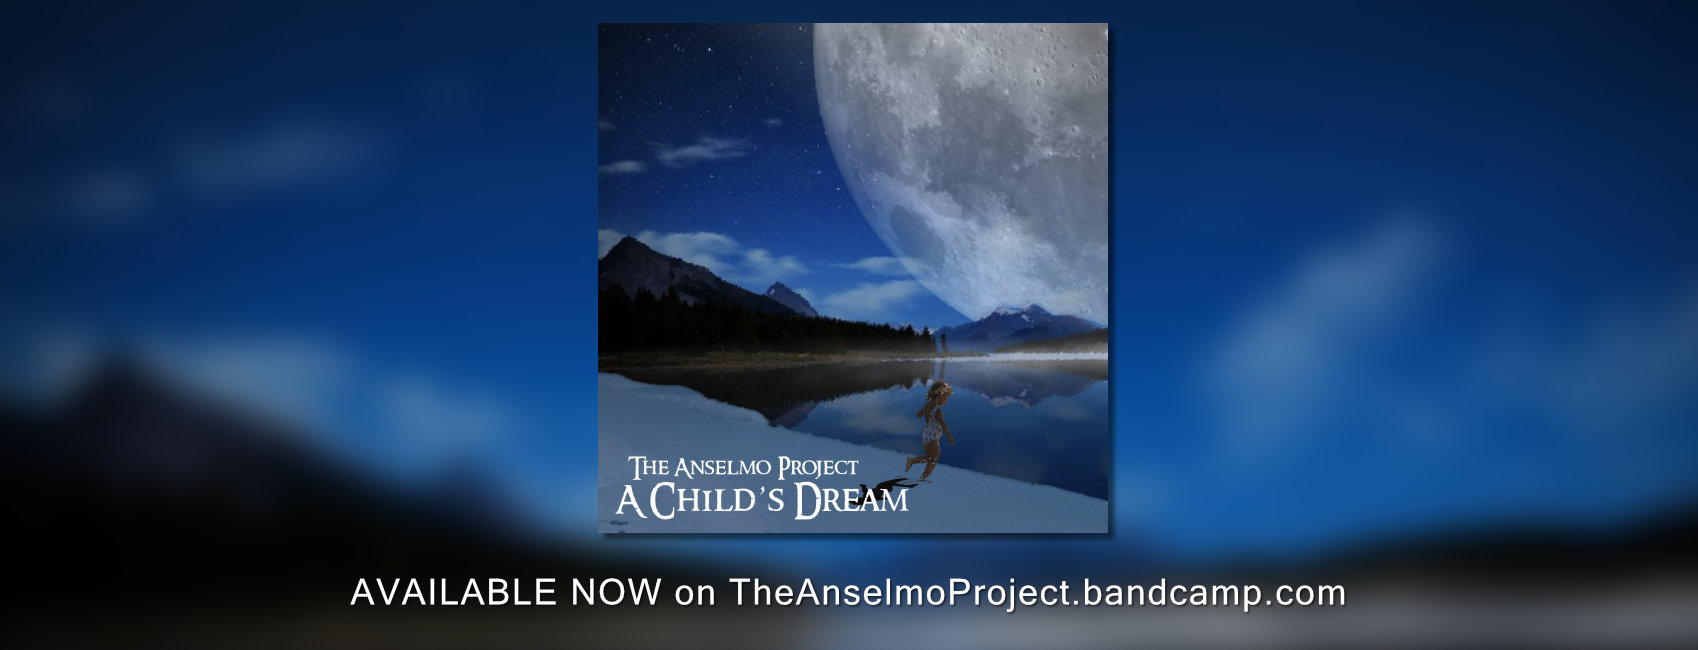 Progressive Rock - The Anselmo Project - A Child